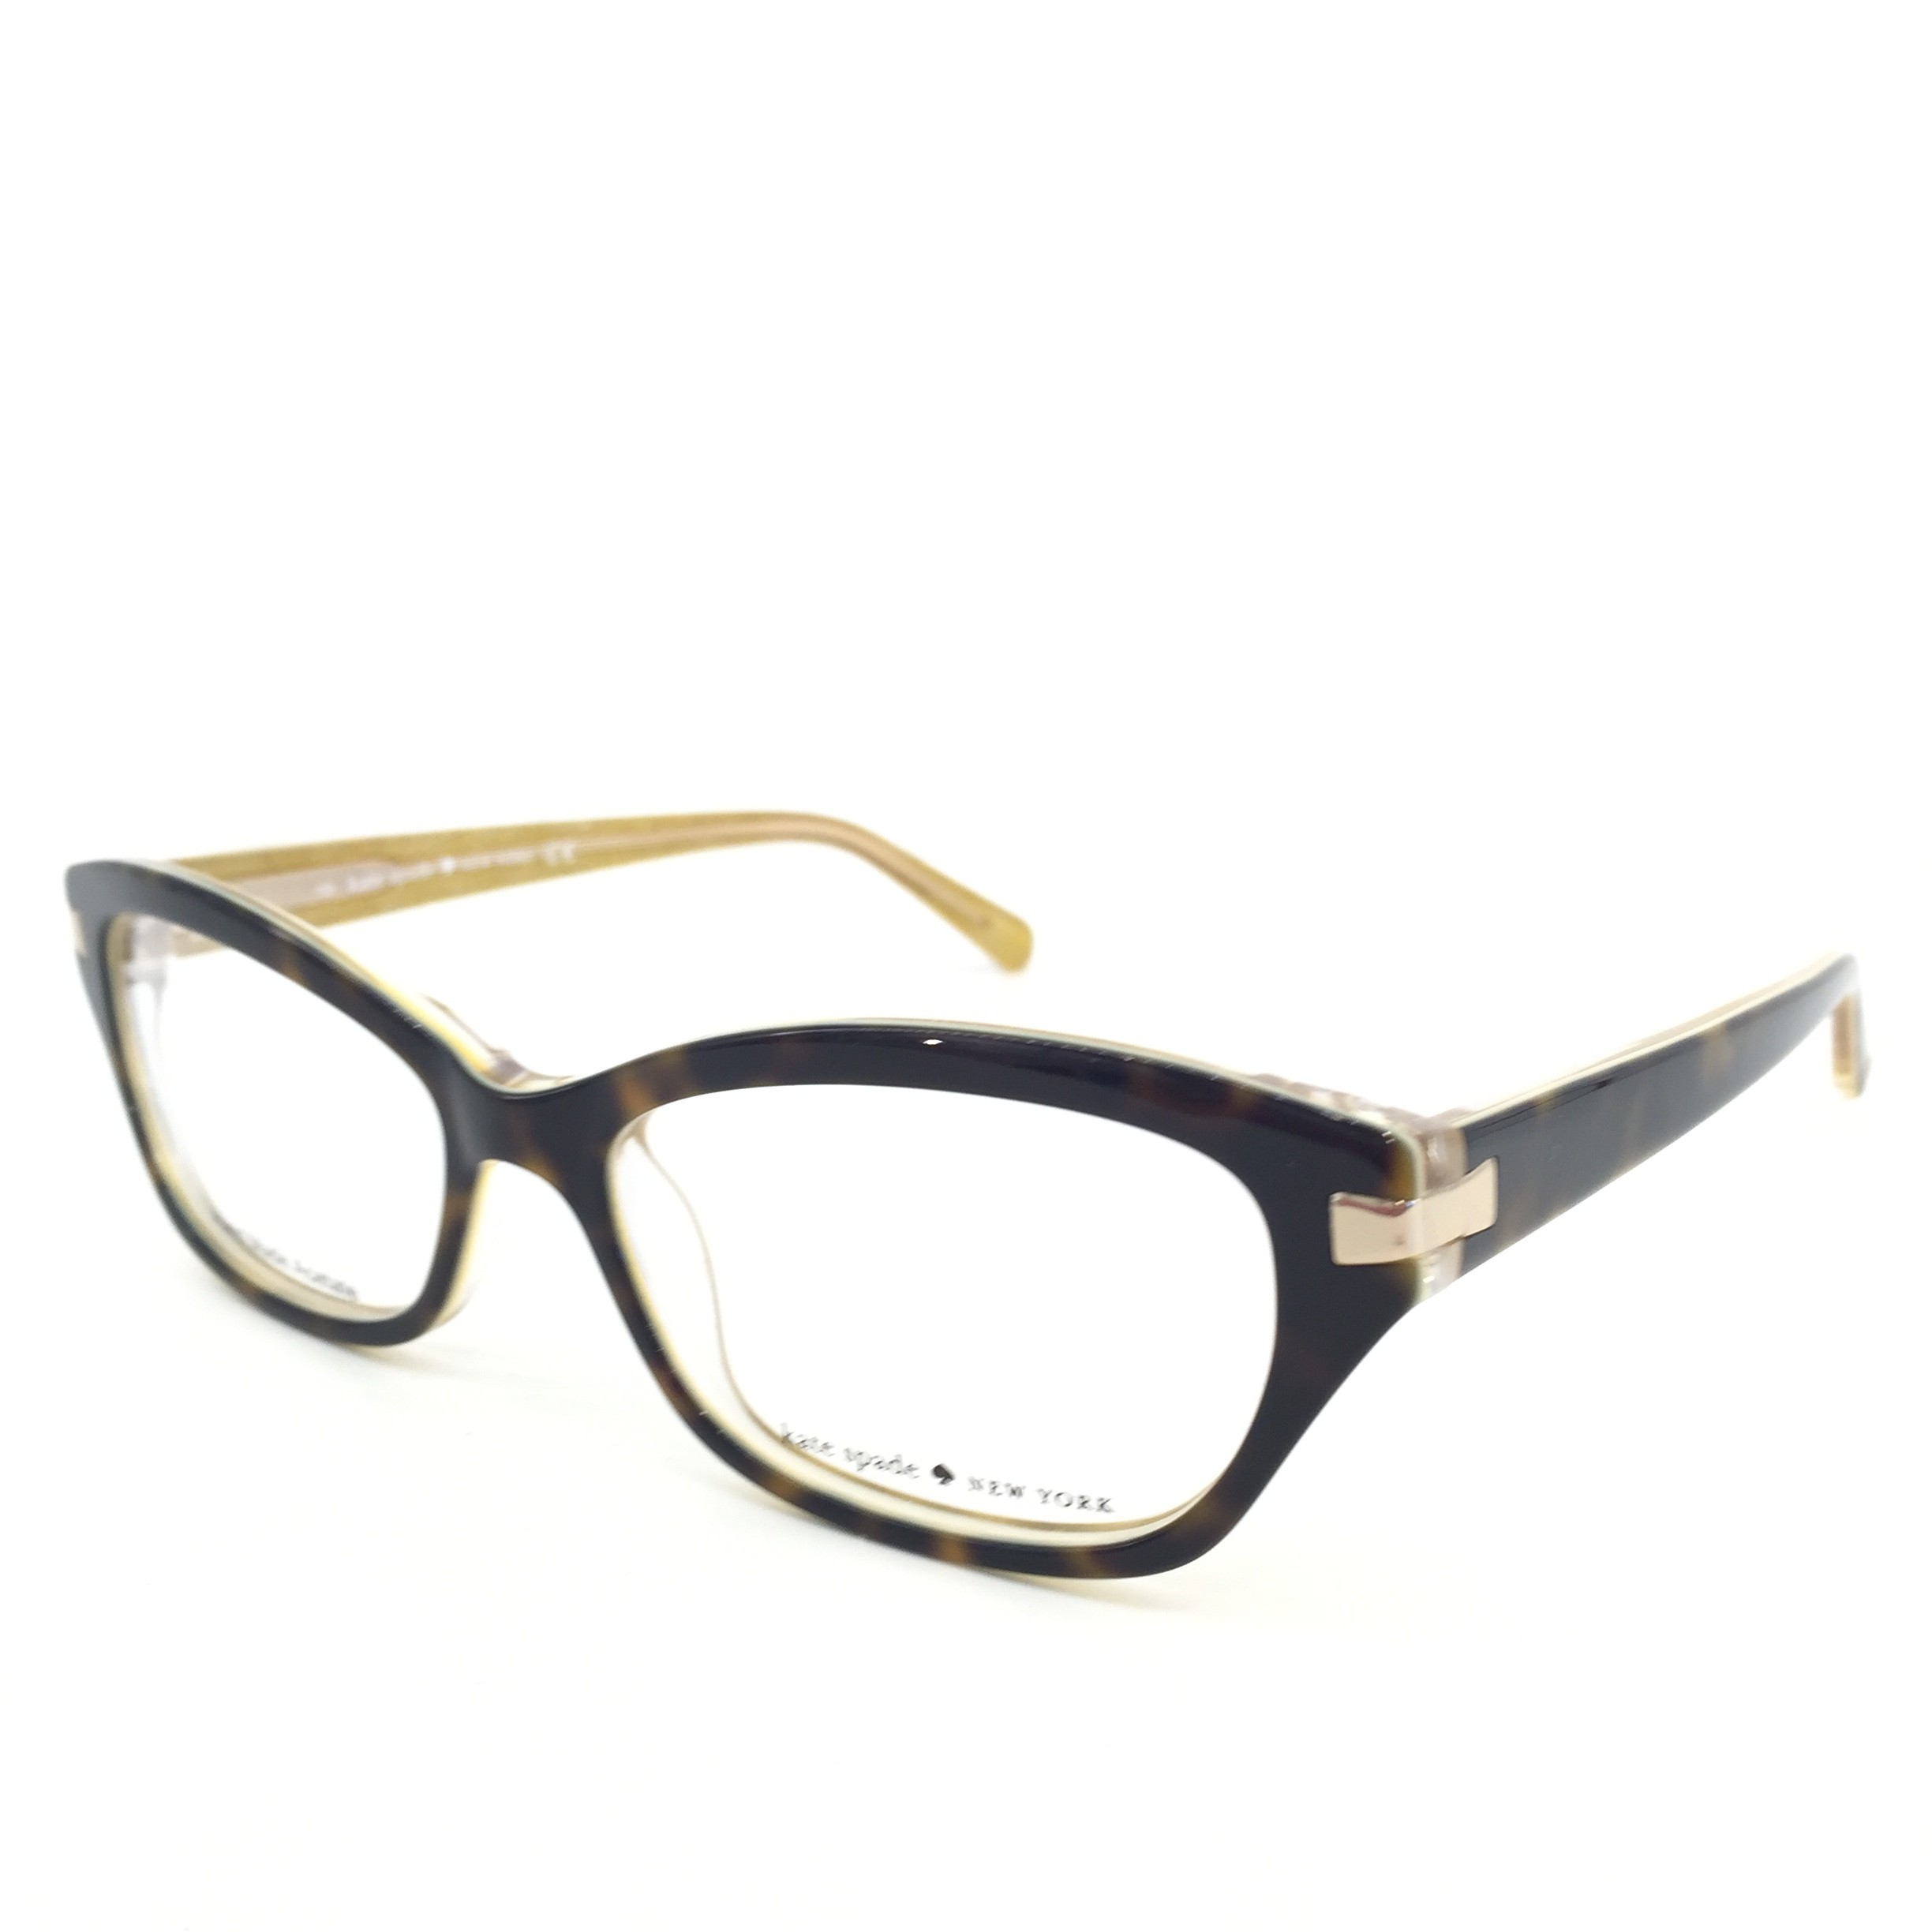 these kate spade frames mix a dark totoise front with a clear back and yellow accented - Kate Spade Frames